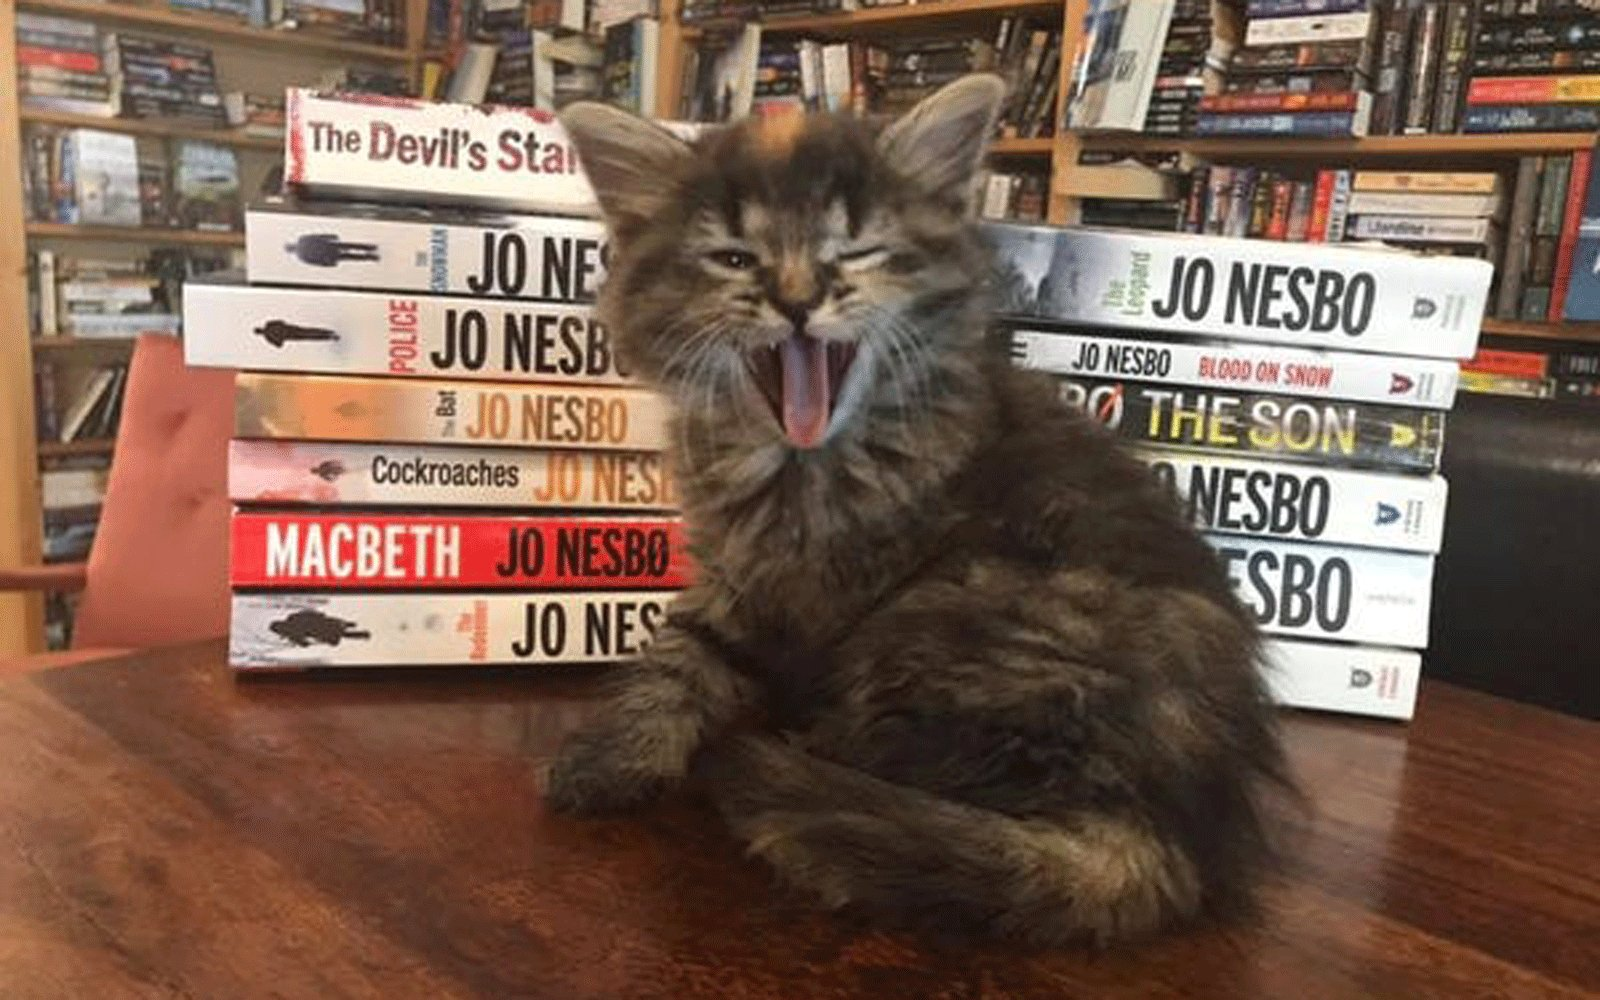 A Bookstore in Canada Is Filled With Adorable Foster Kittens That Customers Can Adopt